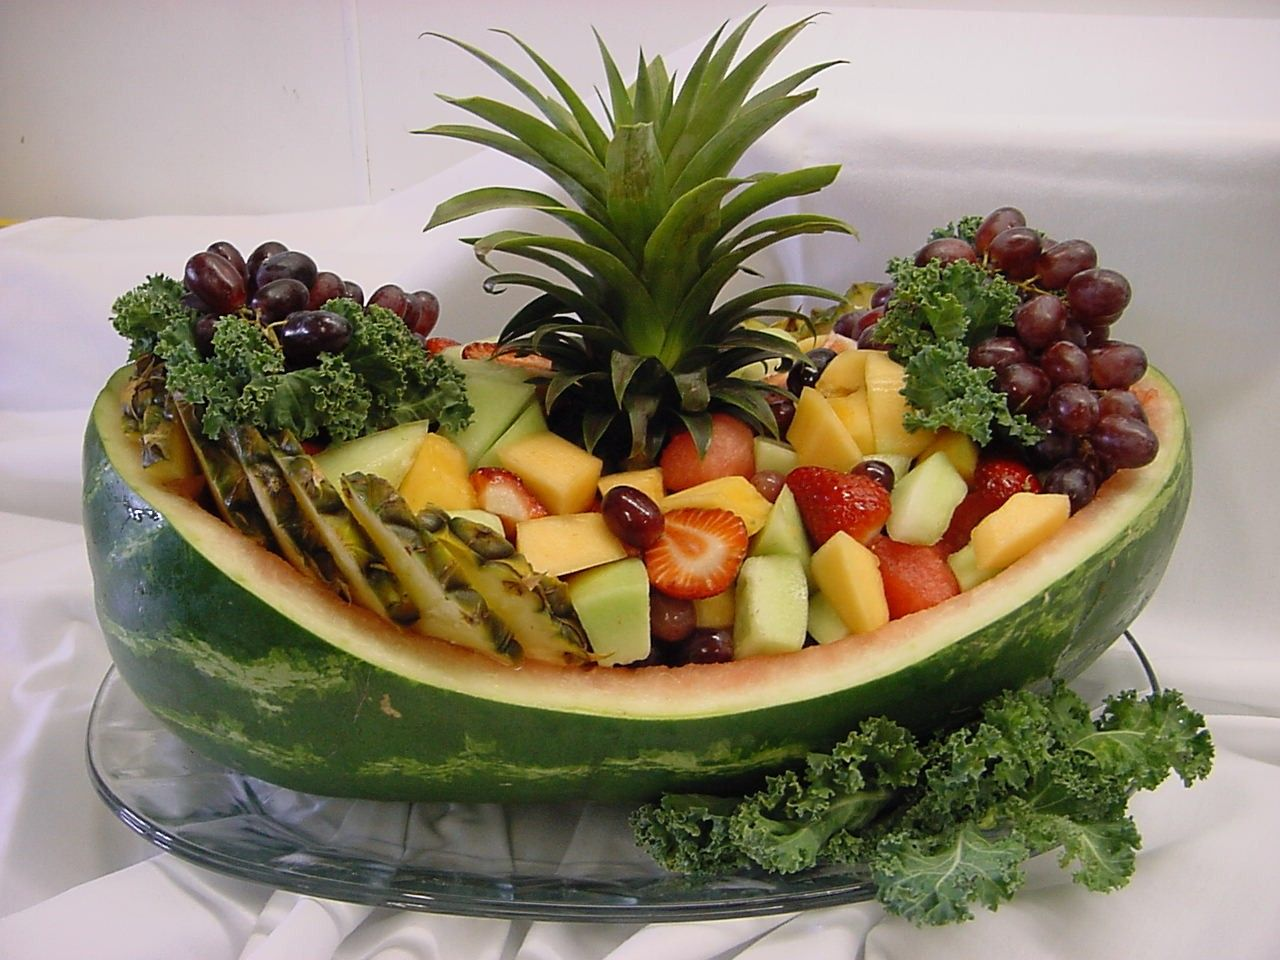 Watermelon cuts into boat design and topped with fruits